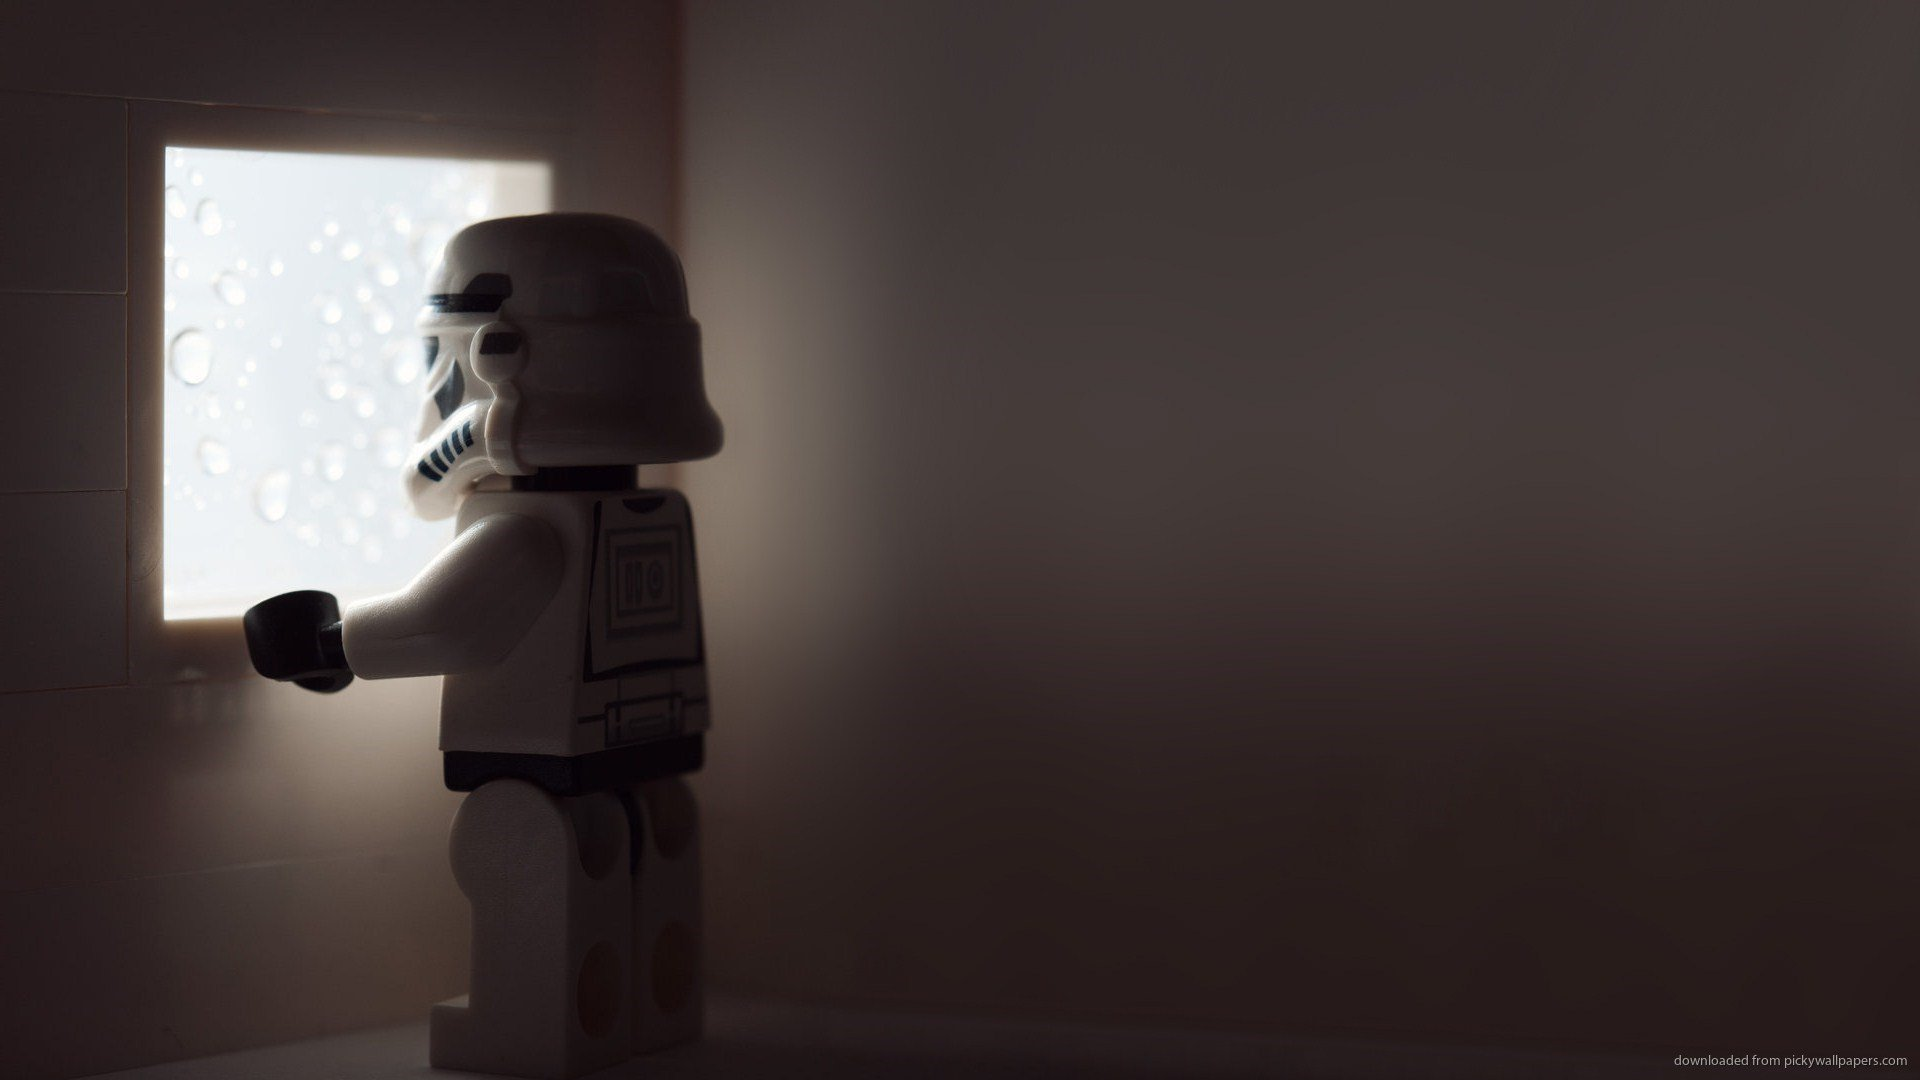 Star Wars Lego Toy Wallpaper Picture For iPhone Blackberry iPad 1920x1080